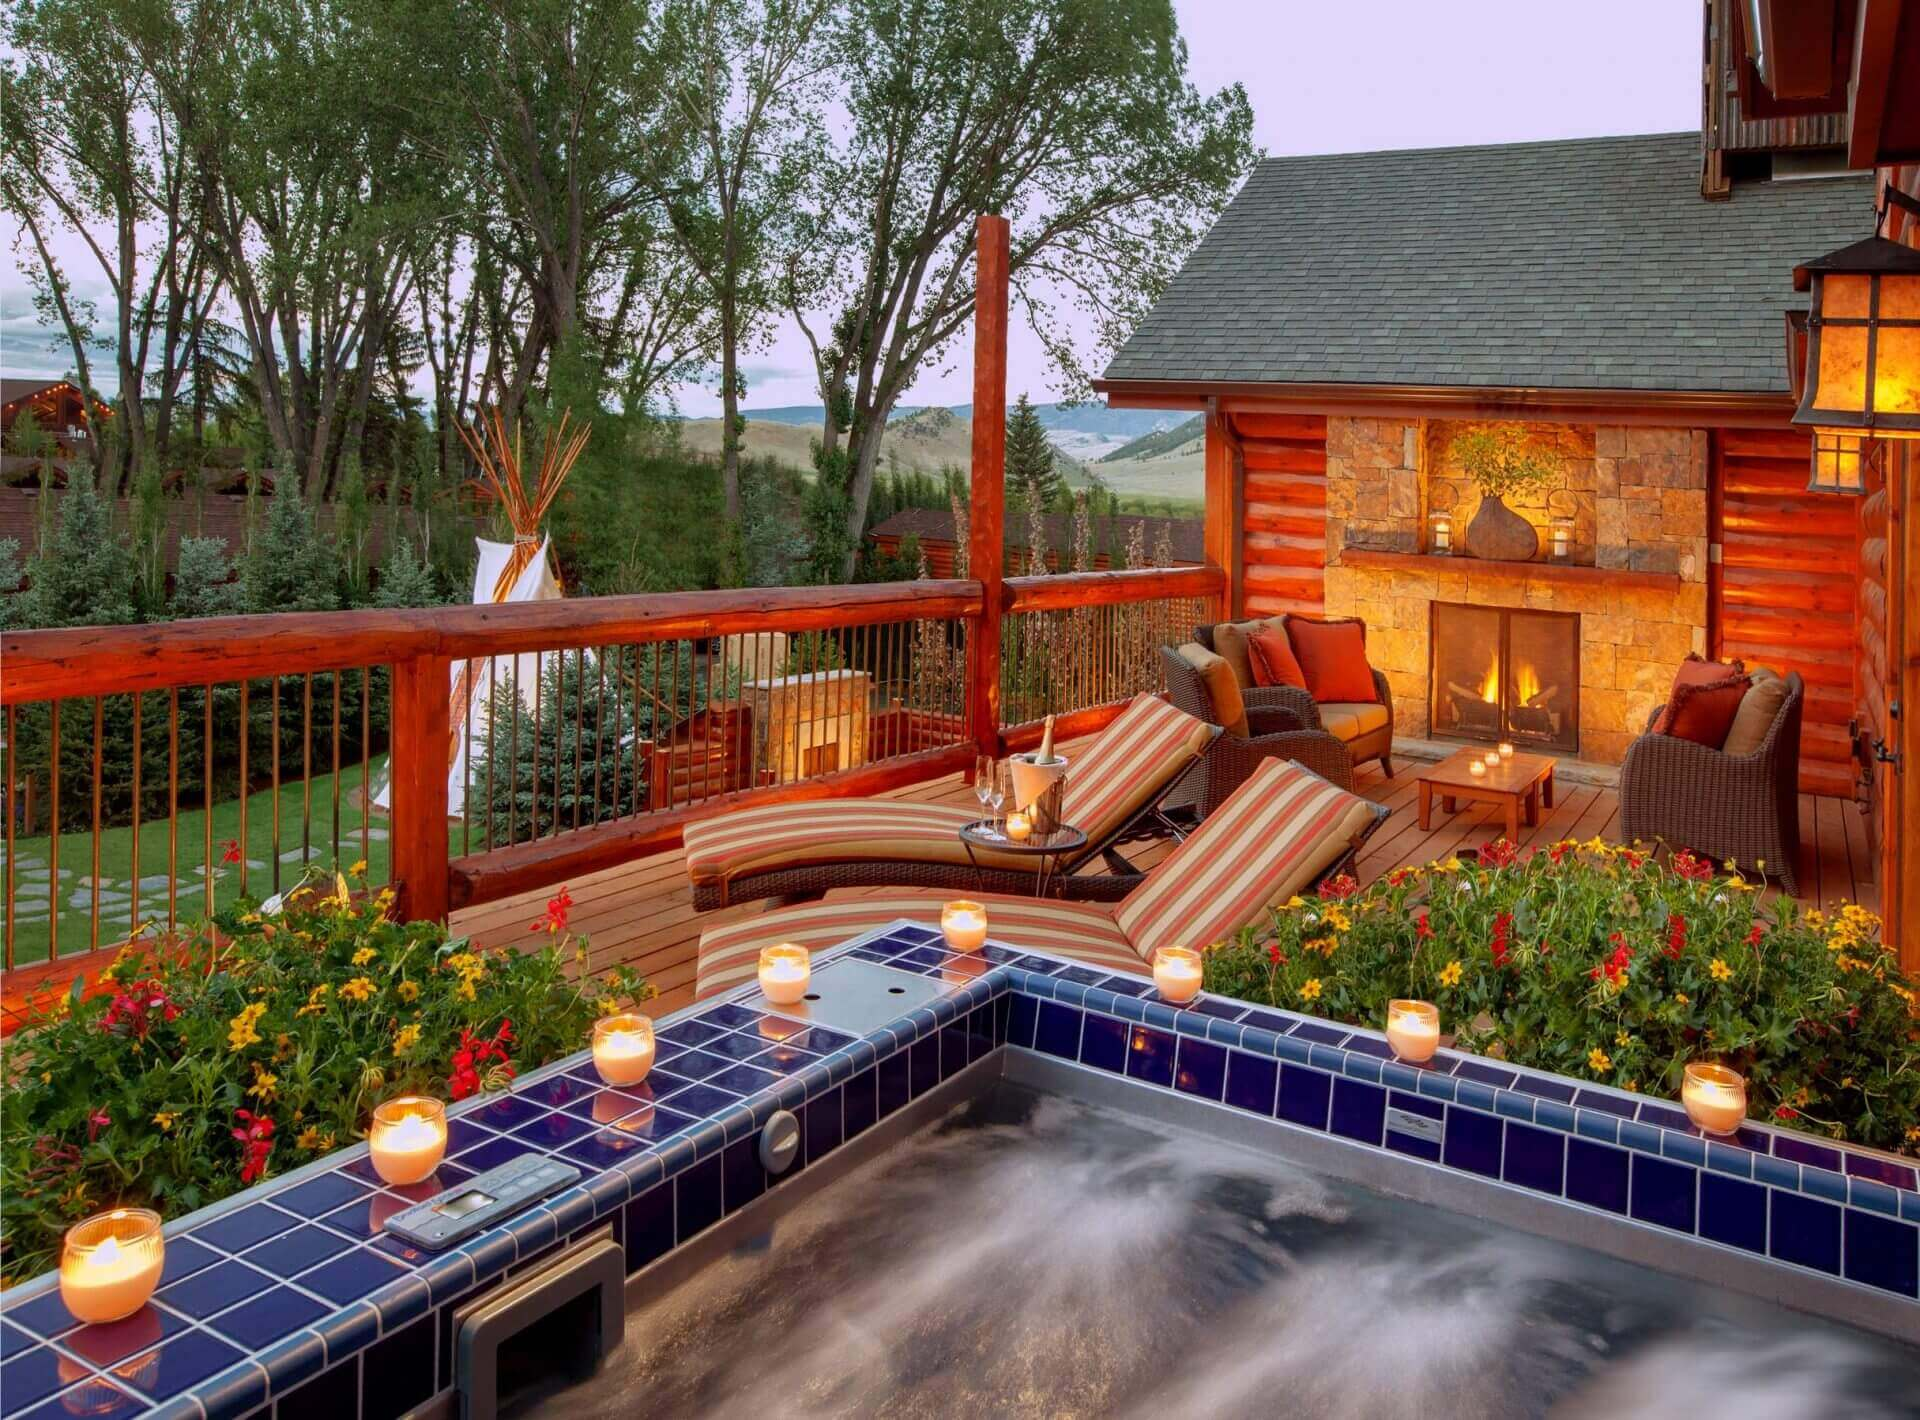 outdoor hot tub lined with candles next to a deck with a fireplace